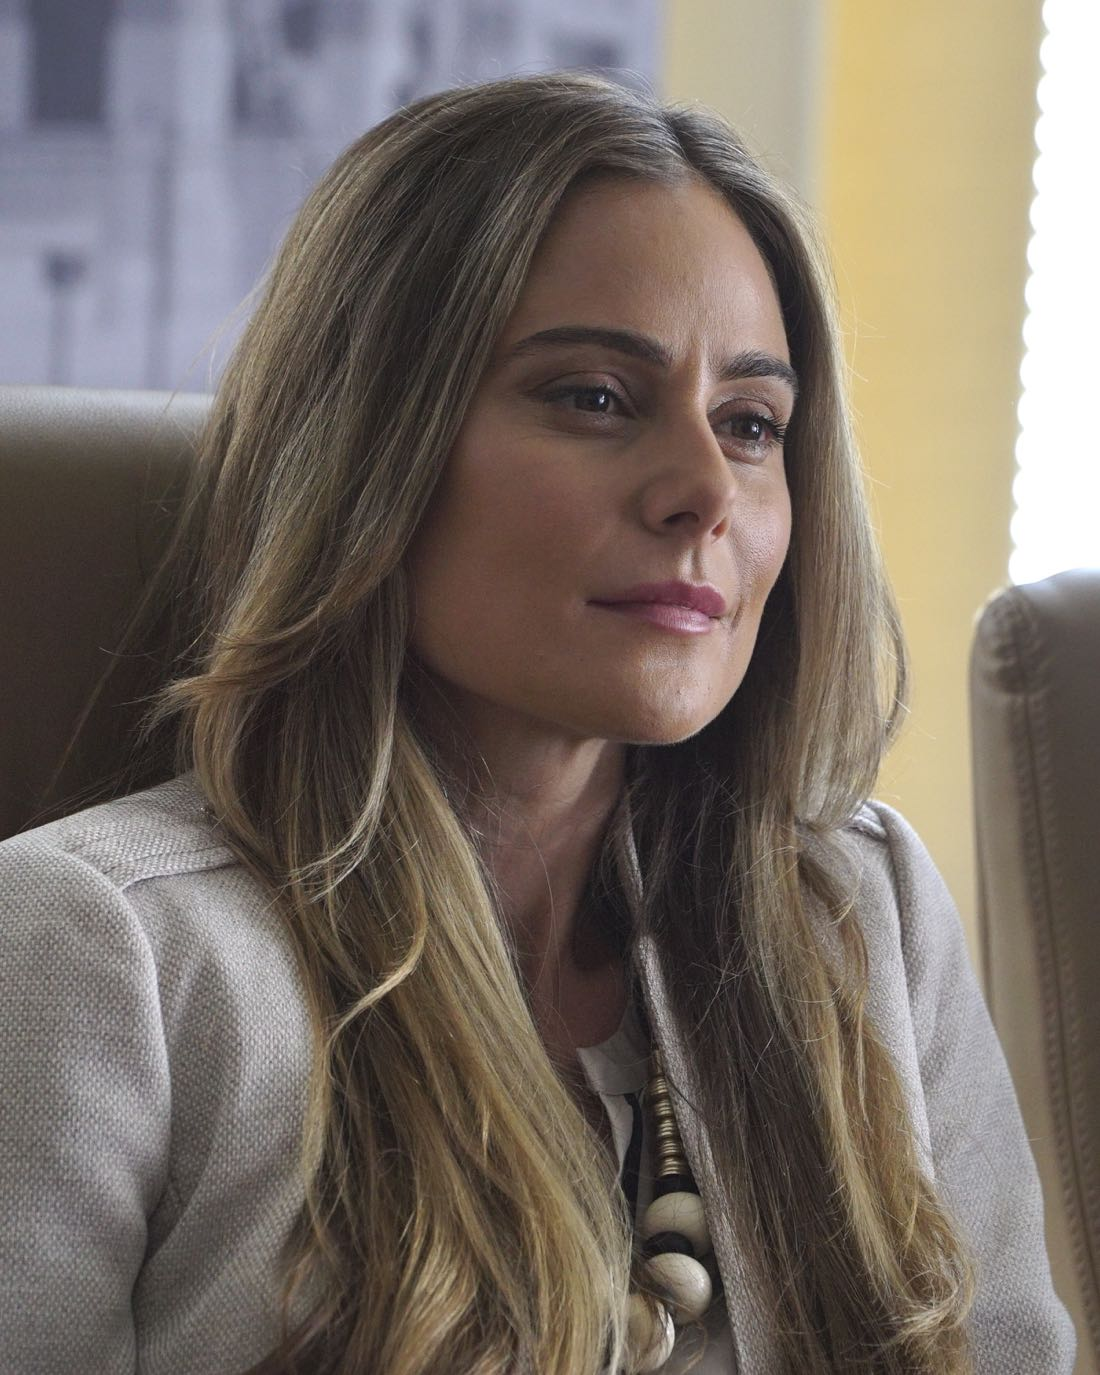 """MISTRESSES - """"""""Survival of the Fittest"""" - Alec threatens for full custody of Vivian, sending Karen into a panic. April and Marc find a condom in Lucy's jacket, forcing April to give """"the talk."""" Kate doesn't tell Joss and Harry about her new boyfriend, as it could have serious recuperations. Joss' actions put Jonathan's nephew in the hospital and later causes tension in her and Harry's relationship. Based on the hit U.K. television series of the same name, """"Mistresses"""" airs TUESDAY, AUGUST 2 (10:00-11:00 p.m. EDT), on the ABC Television Network. (ABC/Eric McCandless) AMANDA BROOKS"""